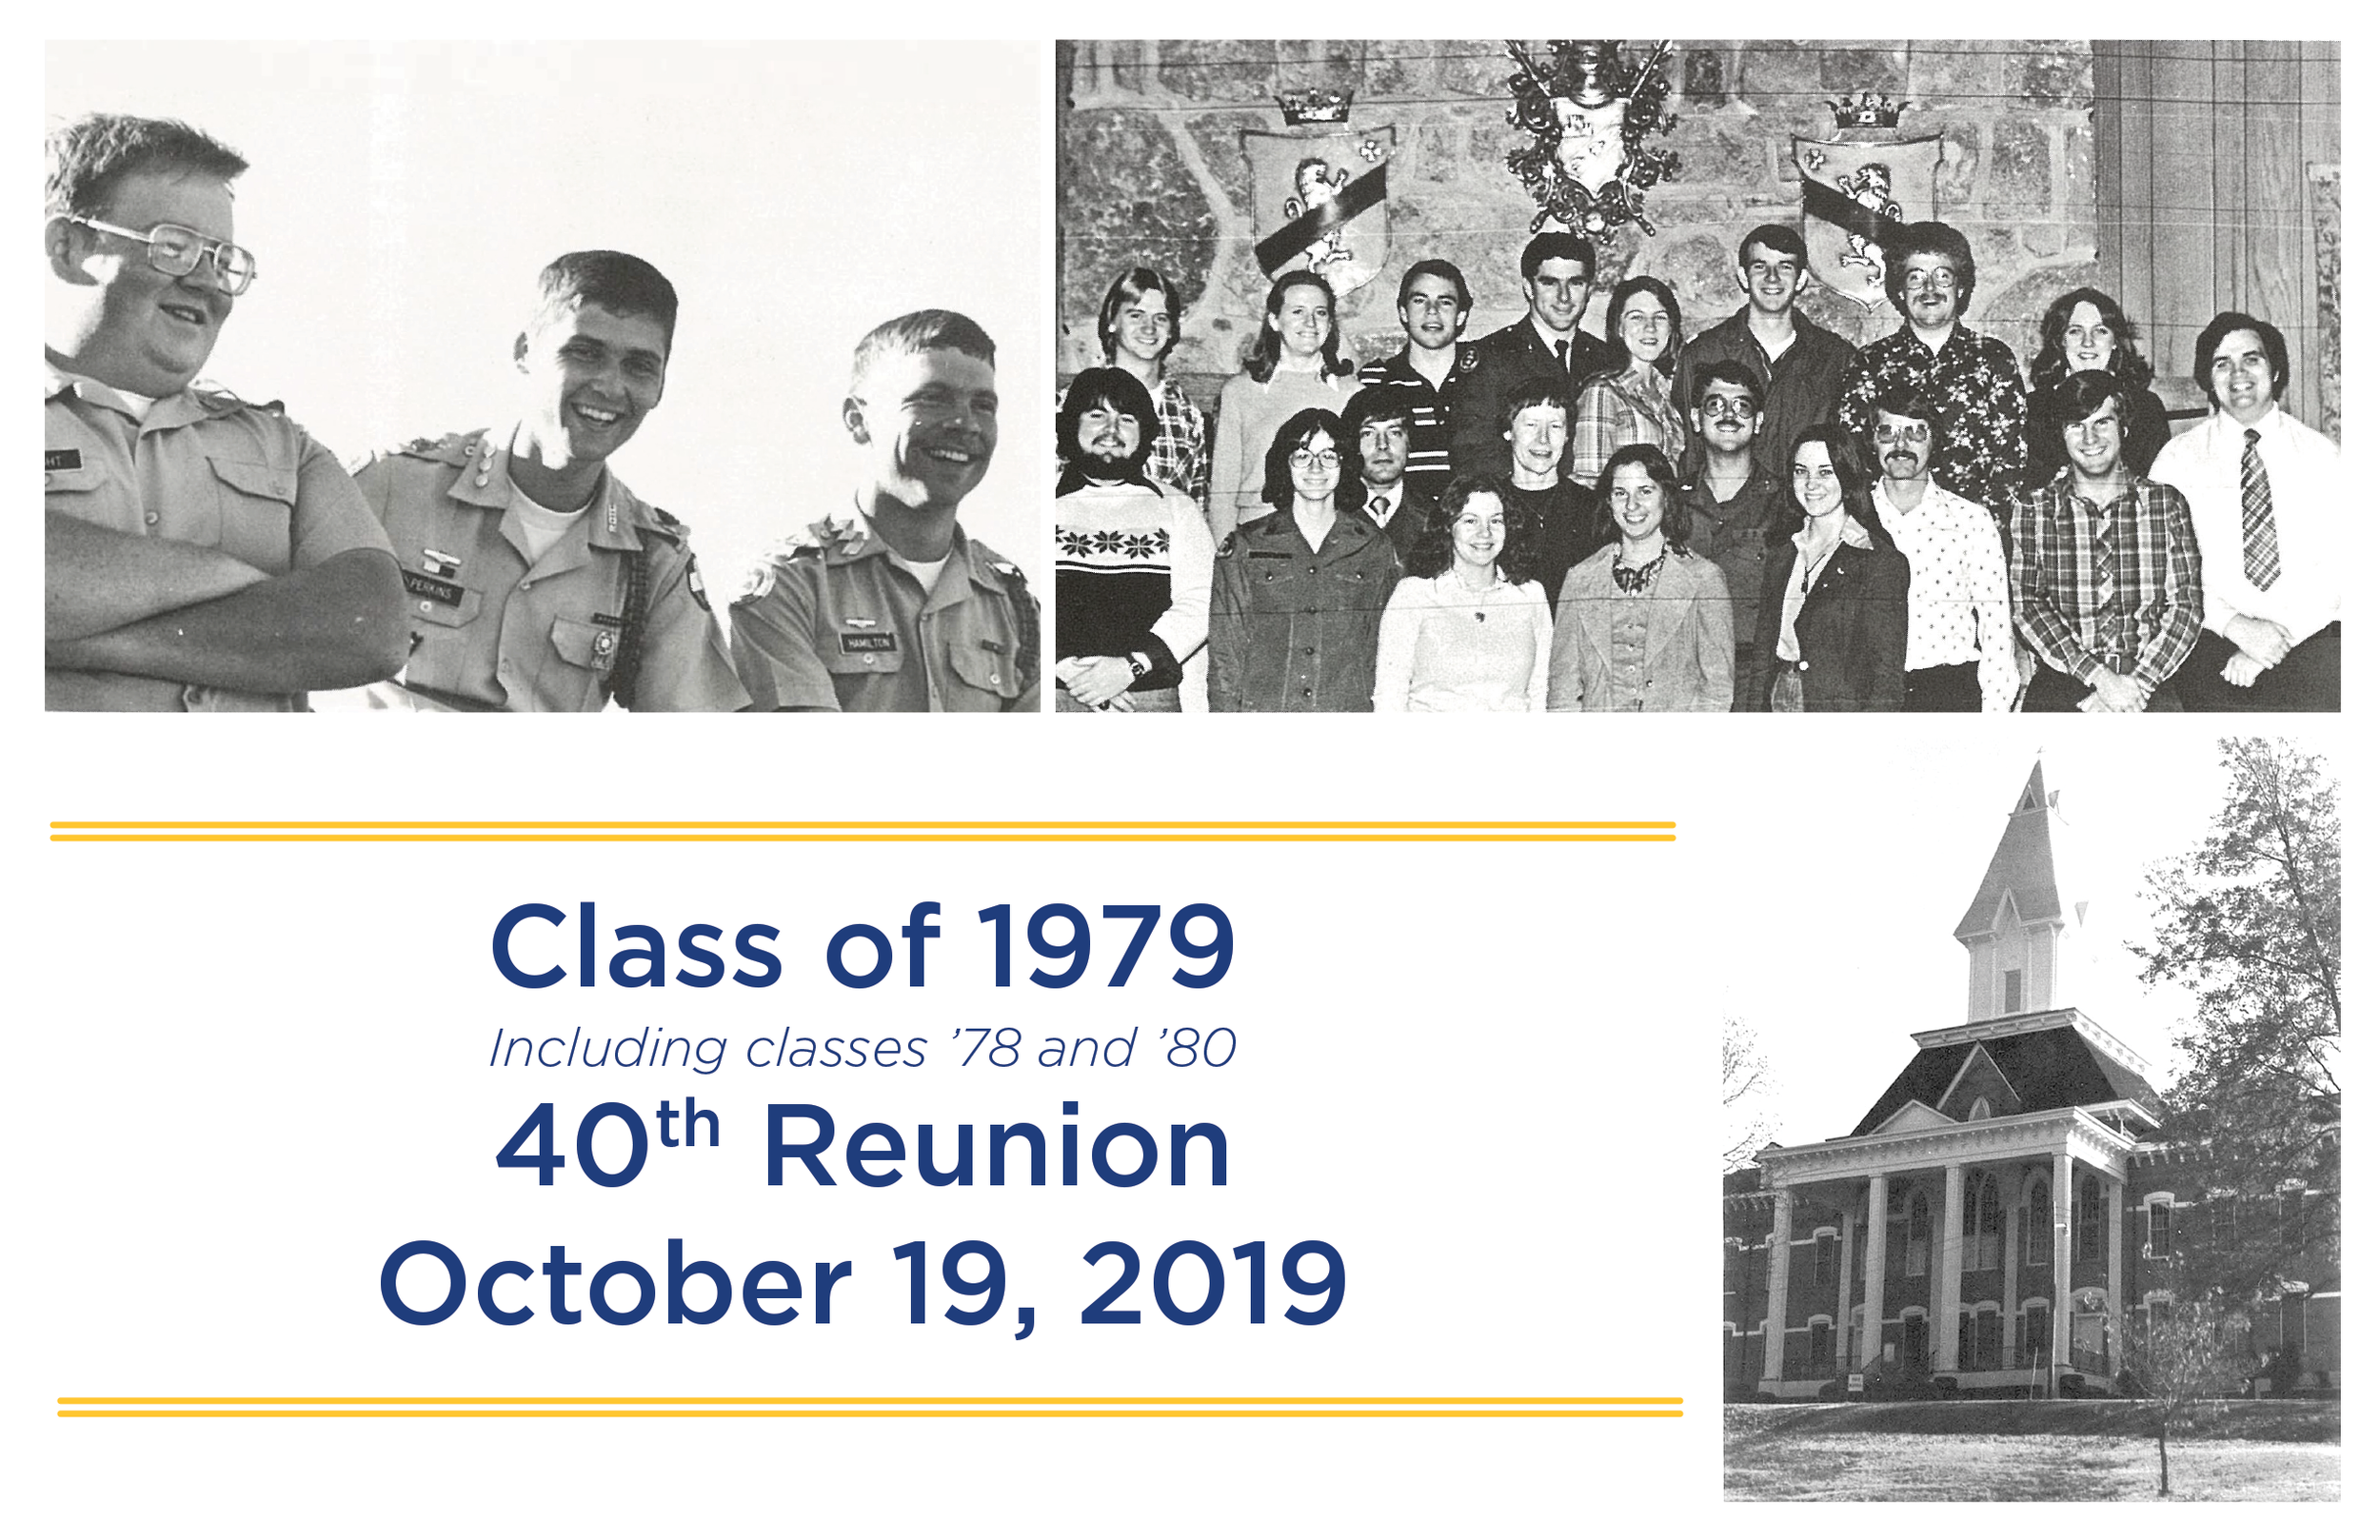 Class of 1979 40th Reunion, including class 1978 and 1980. October 19, 2019